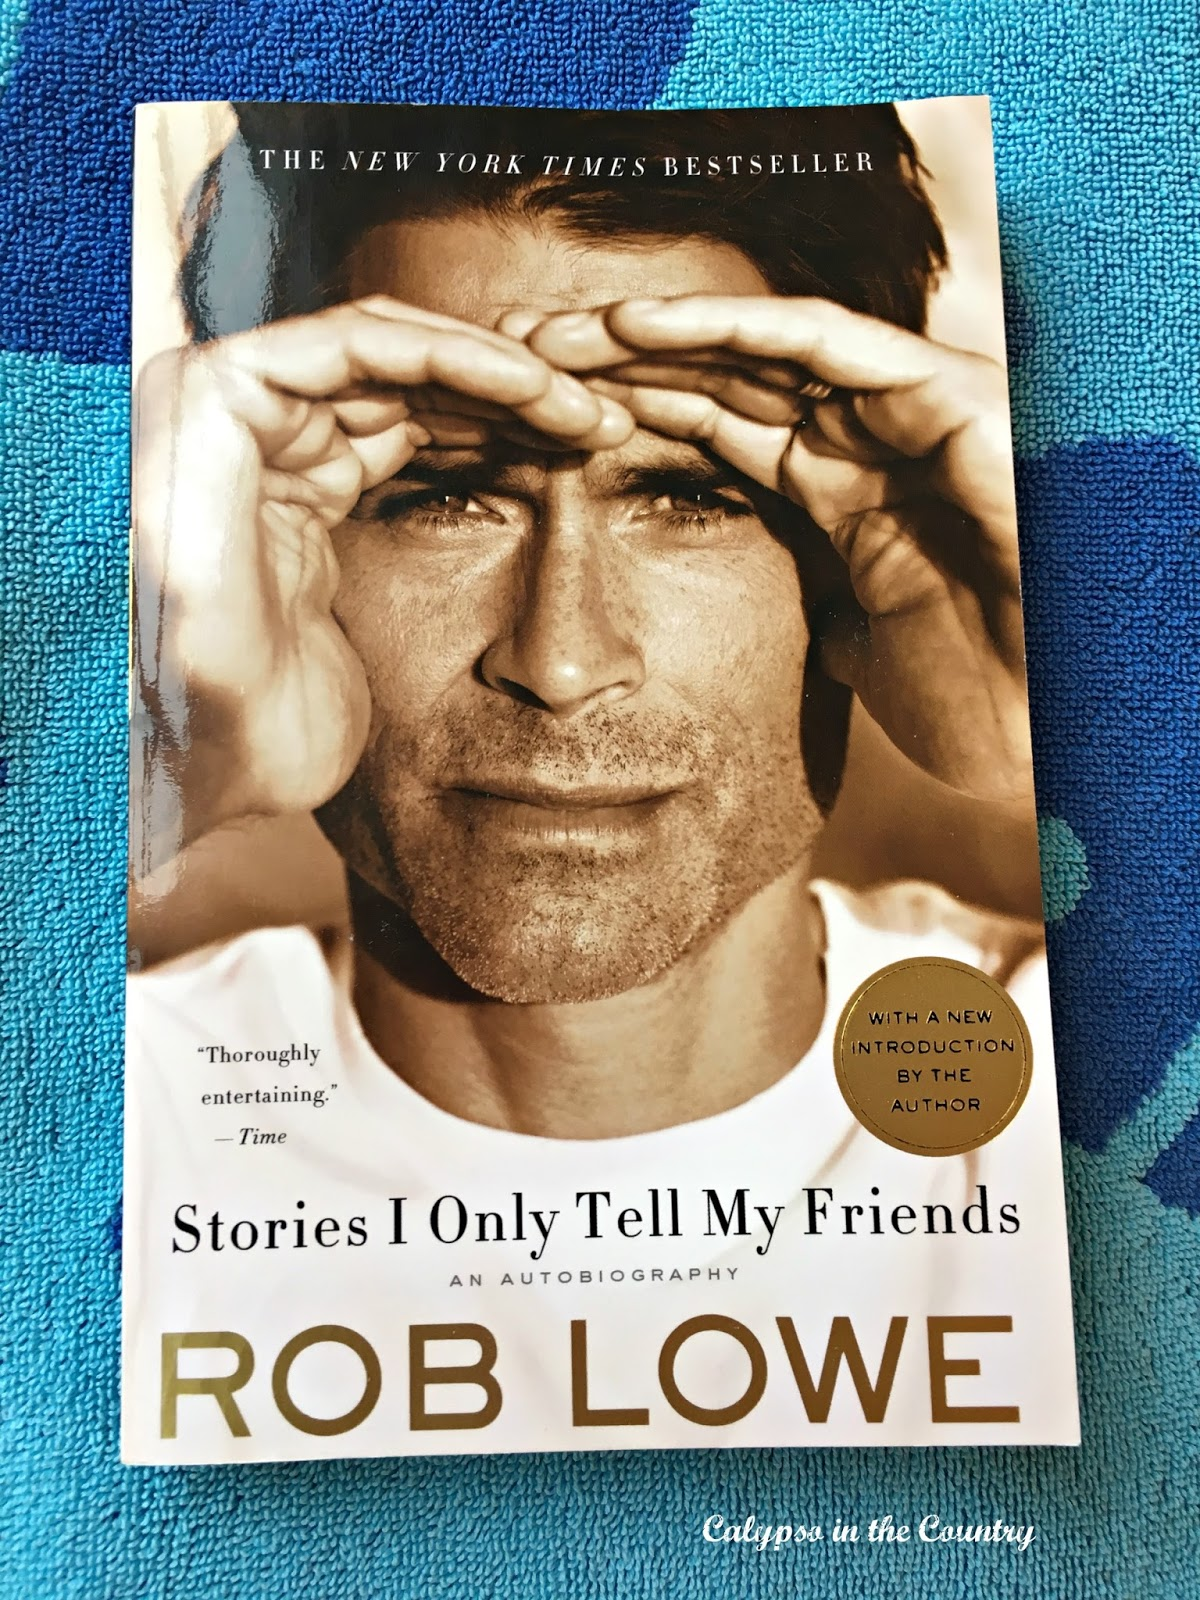 Rob Lowe Autobiography - So entertaining a great to read on the beach!